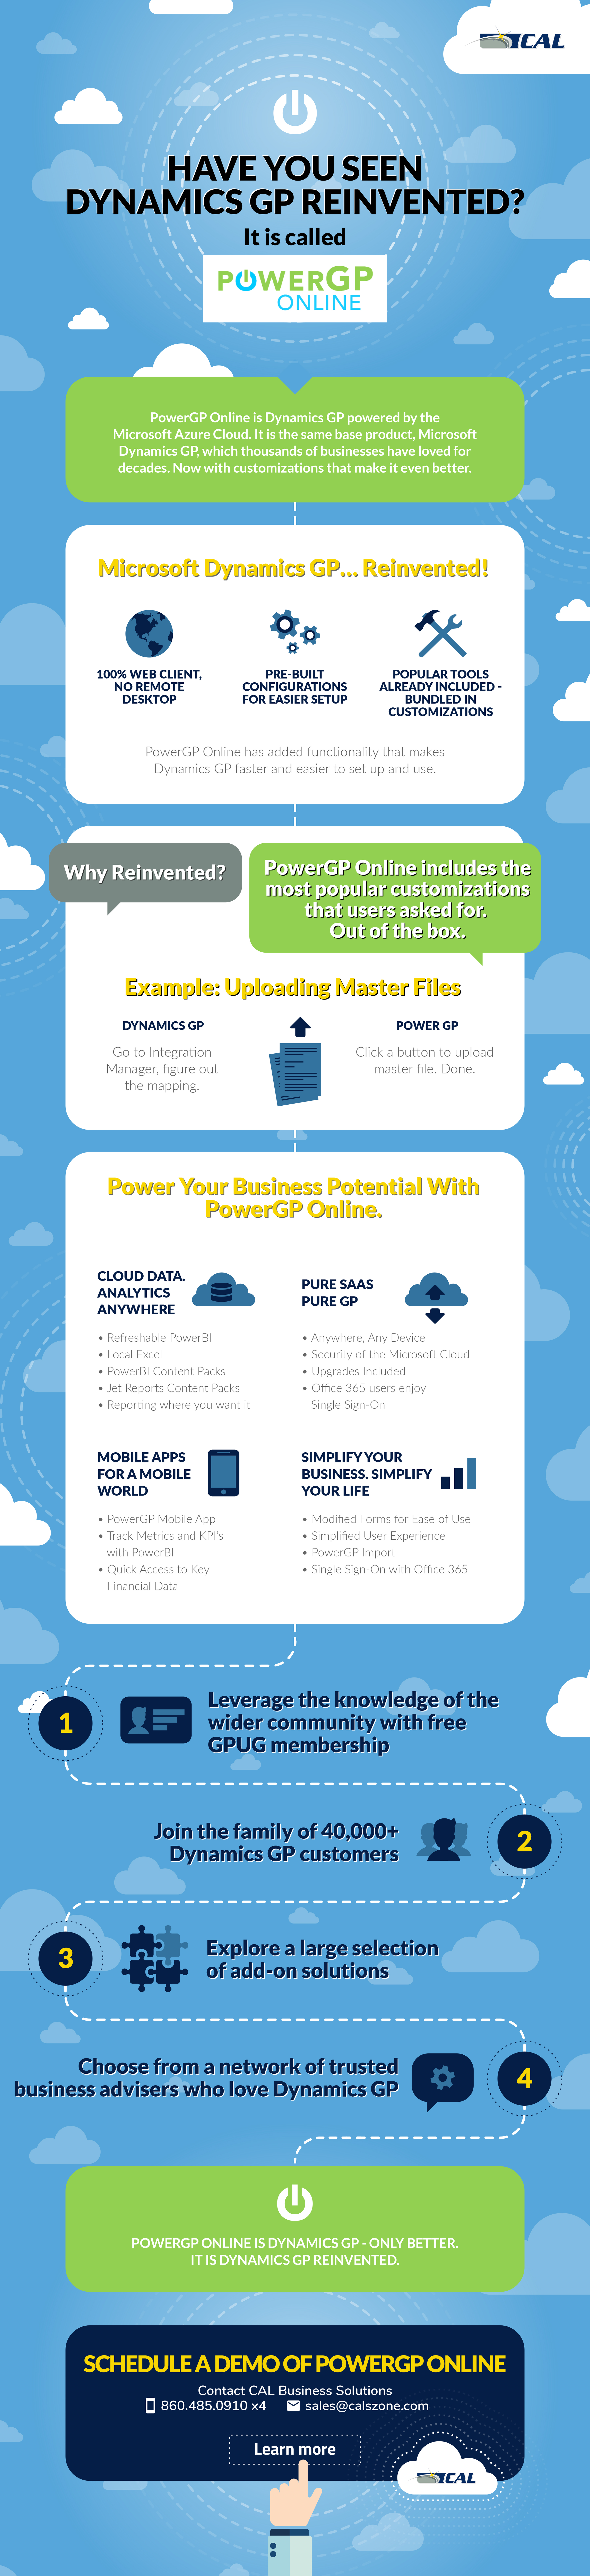 INFOGRAPHIC: Have You Seen Dynamics GP Reinvented?